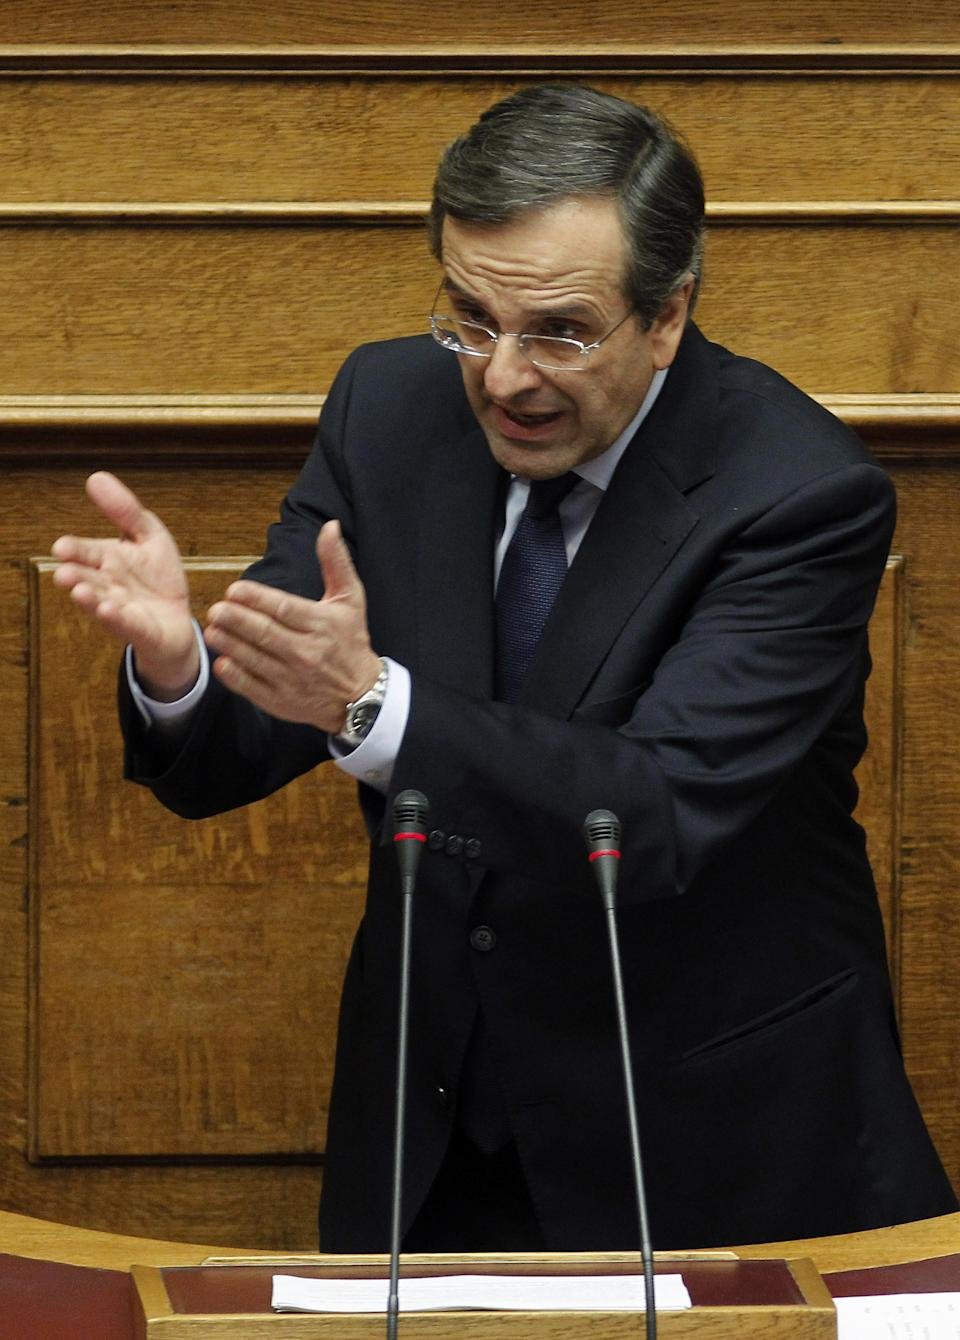 Conservative opposition leader Antonis Samaras speaks during a parliament session in Athens, Thursday, Nov. 3, 2011. Samaras called on the prime minister to resign and led his party in a dramatic walkout during a parliamentary debate about the viability of the government. (AP Photo/Petros Giannakouris)